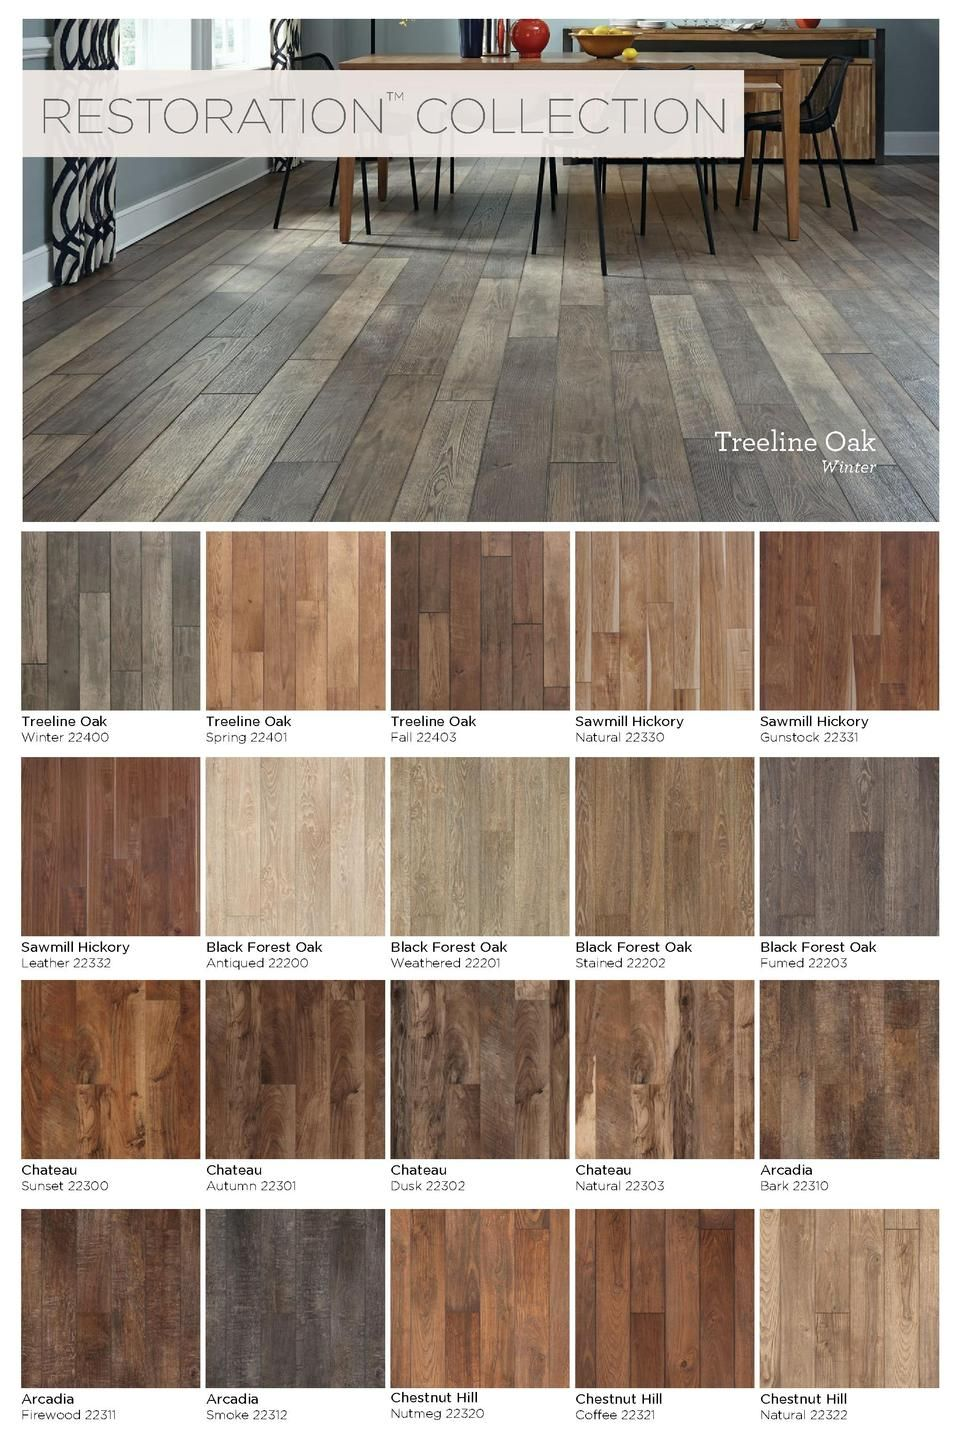 Mannington offers quality laminate flooring in both hardwood and mannington offers quality laminate flooring in both hardwood and stone tile looks that will add to dailygadgetfo Images